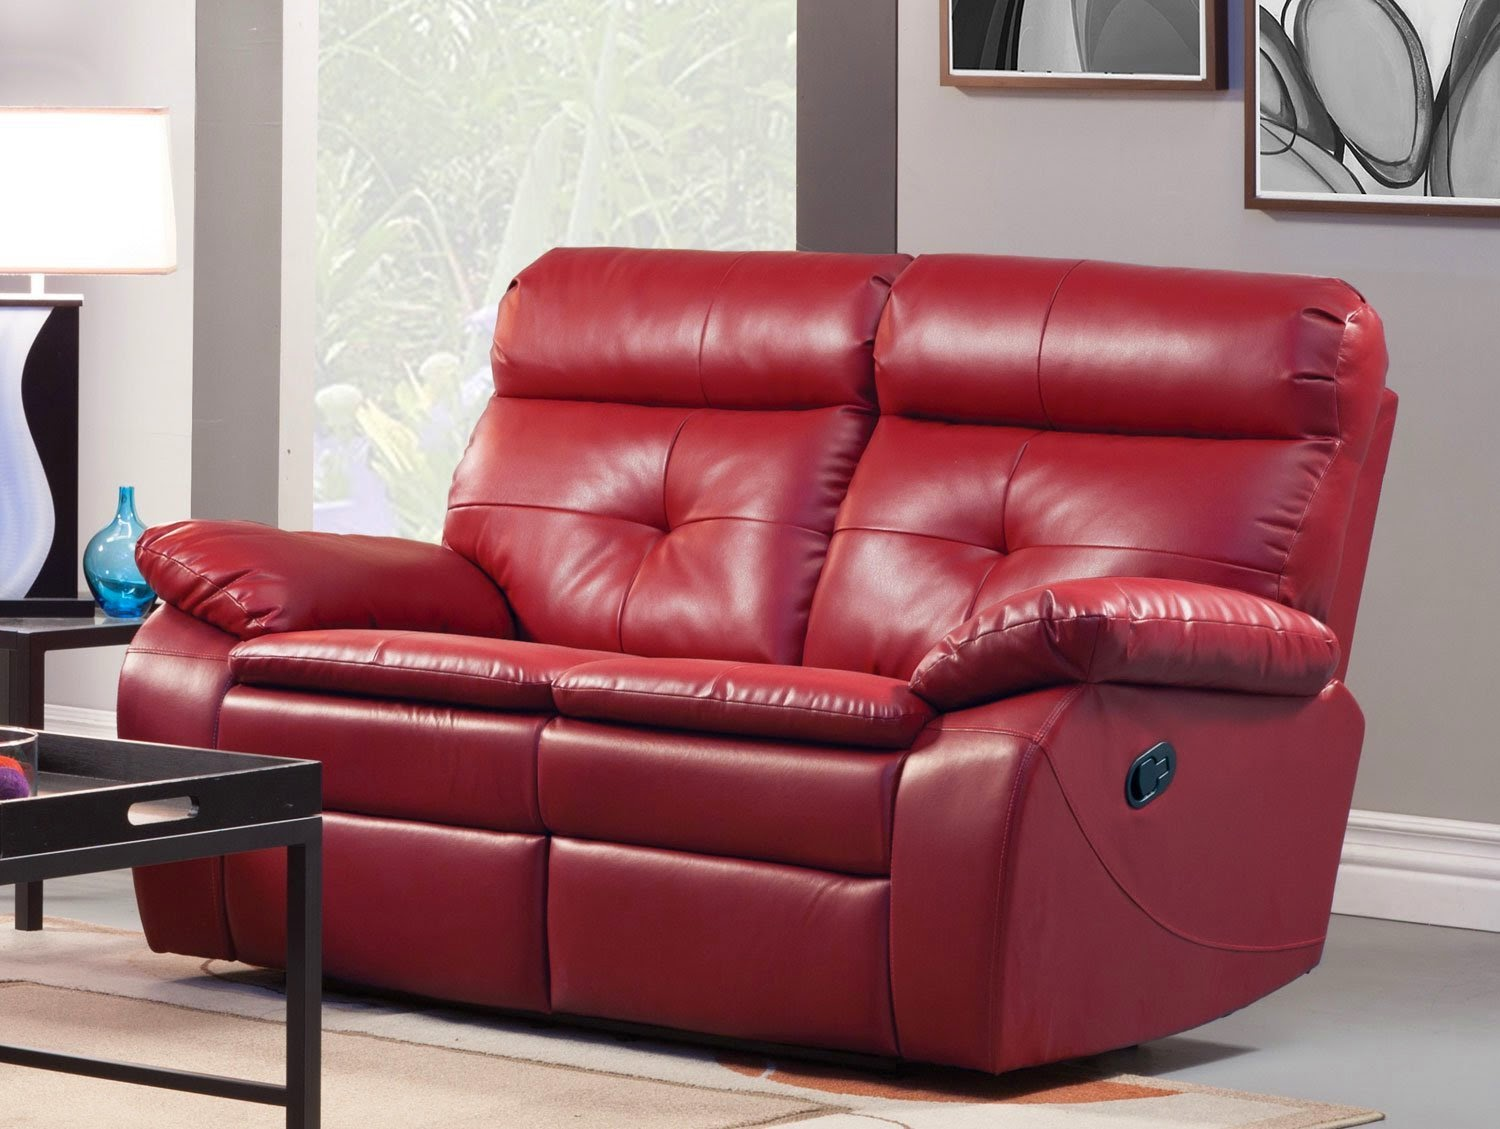 Wallace Love Seat Red & Cheap Reclining Sofas Sale: 2 Seater Leather Recliner Sofa Sale islam-shia.org